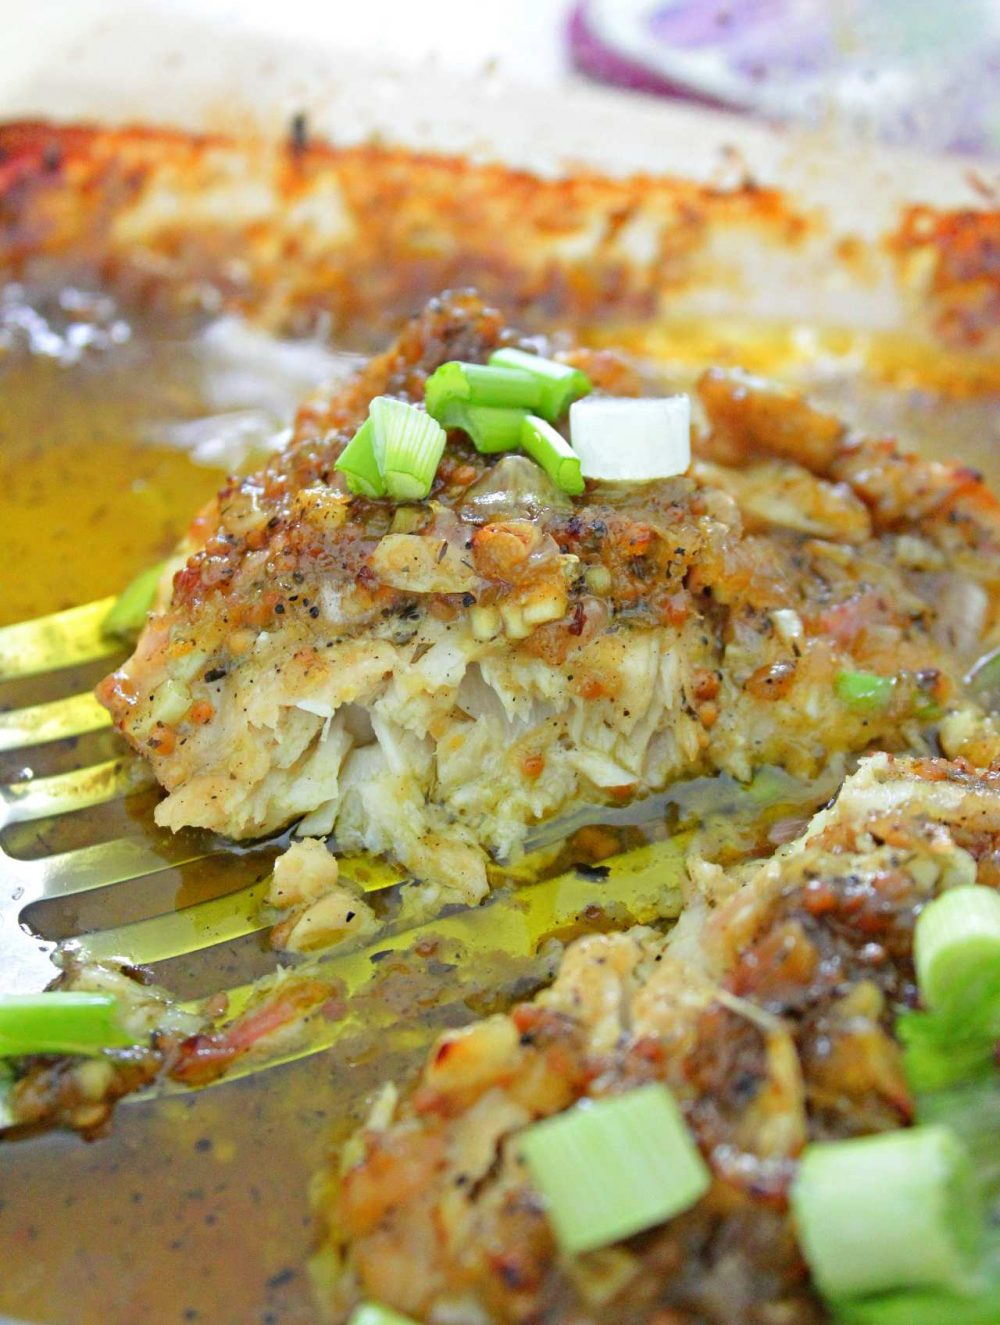 Fish with mustard sauce in a baking dish, on a turner, sprinkled with green onions